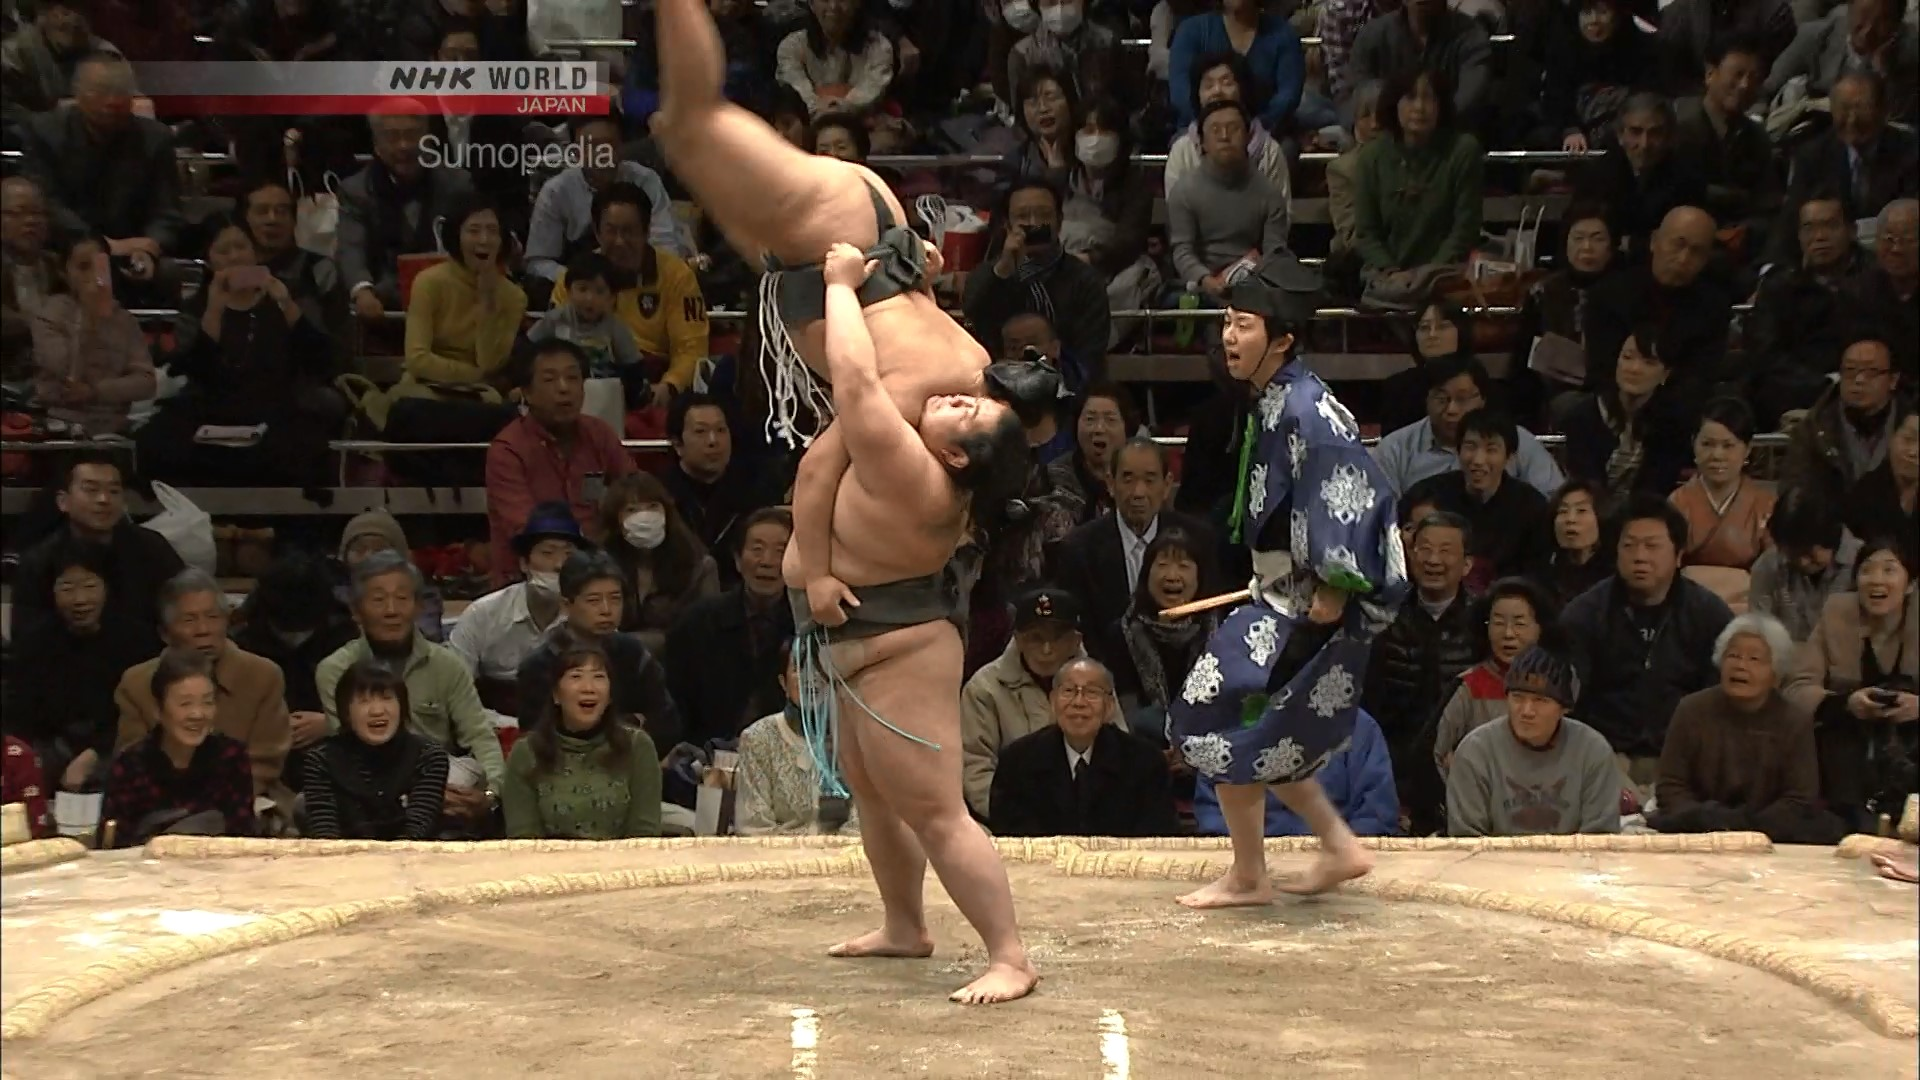 Forbidden Moves in Sumo